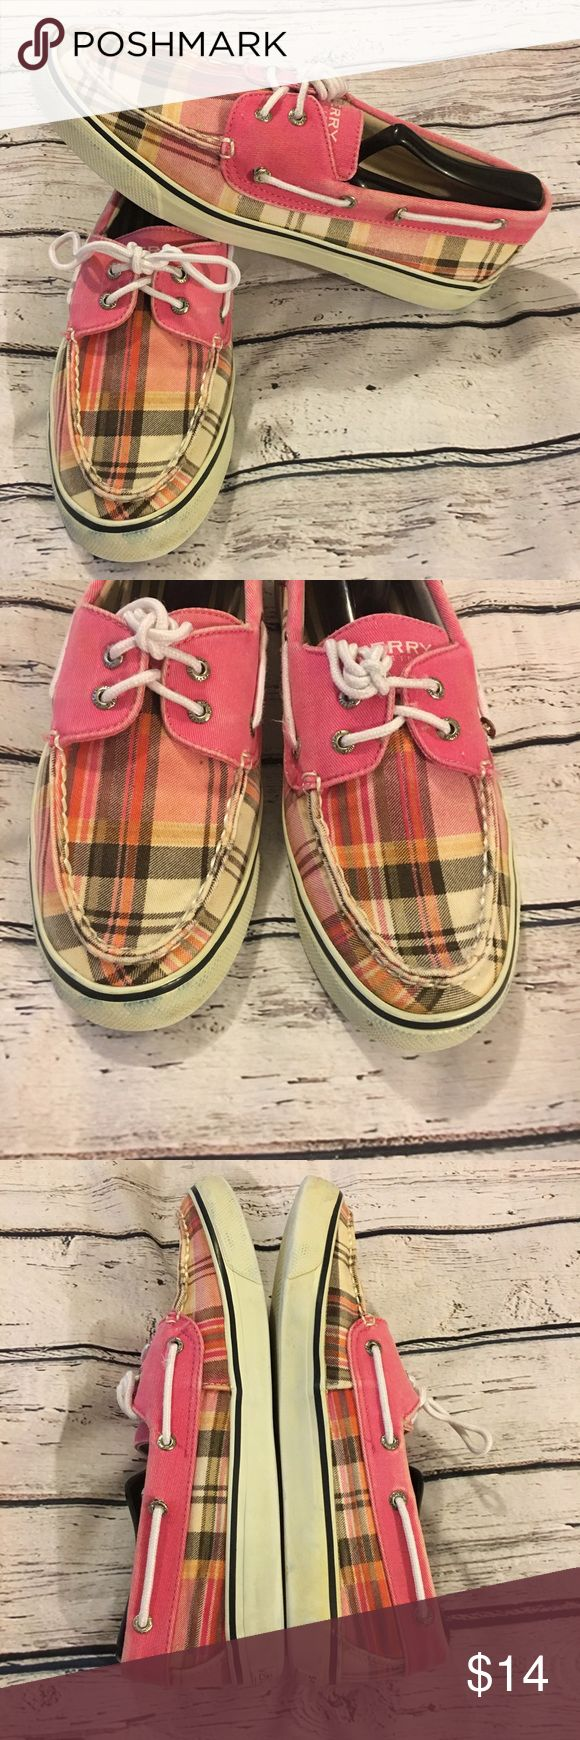 Woman's Sperry 9.5 Boat Shoes Pink Plaid Top-Sider Woman's Pink plaid Sperry Boat shoes Top-Sider Shoes are a little stained inside, but I️ have washed them. They're clean. Three grommets have come loose. Shown in photos. Size 9.5 Clean outside, bottoms in good condition. Price is according to condition. All flaws have been disclosed to the best of my ability. Smoke free pet free home No weird odors. Shoes are in good overall condition. Sperry Top-Sider Shoes Flats & Loafers